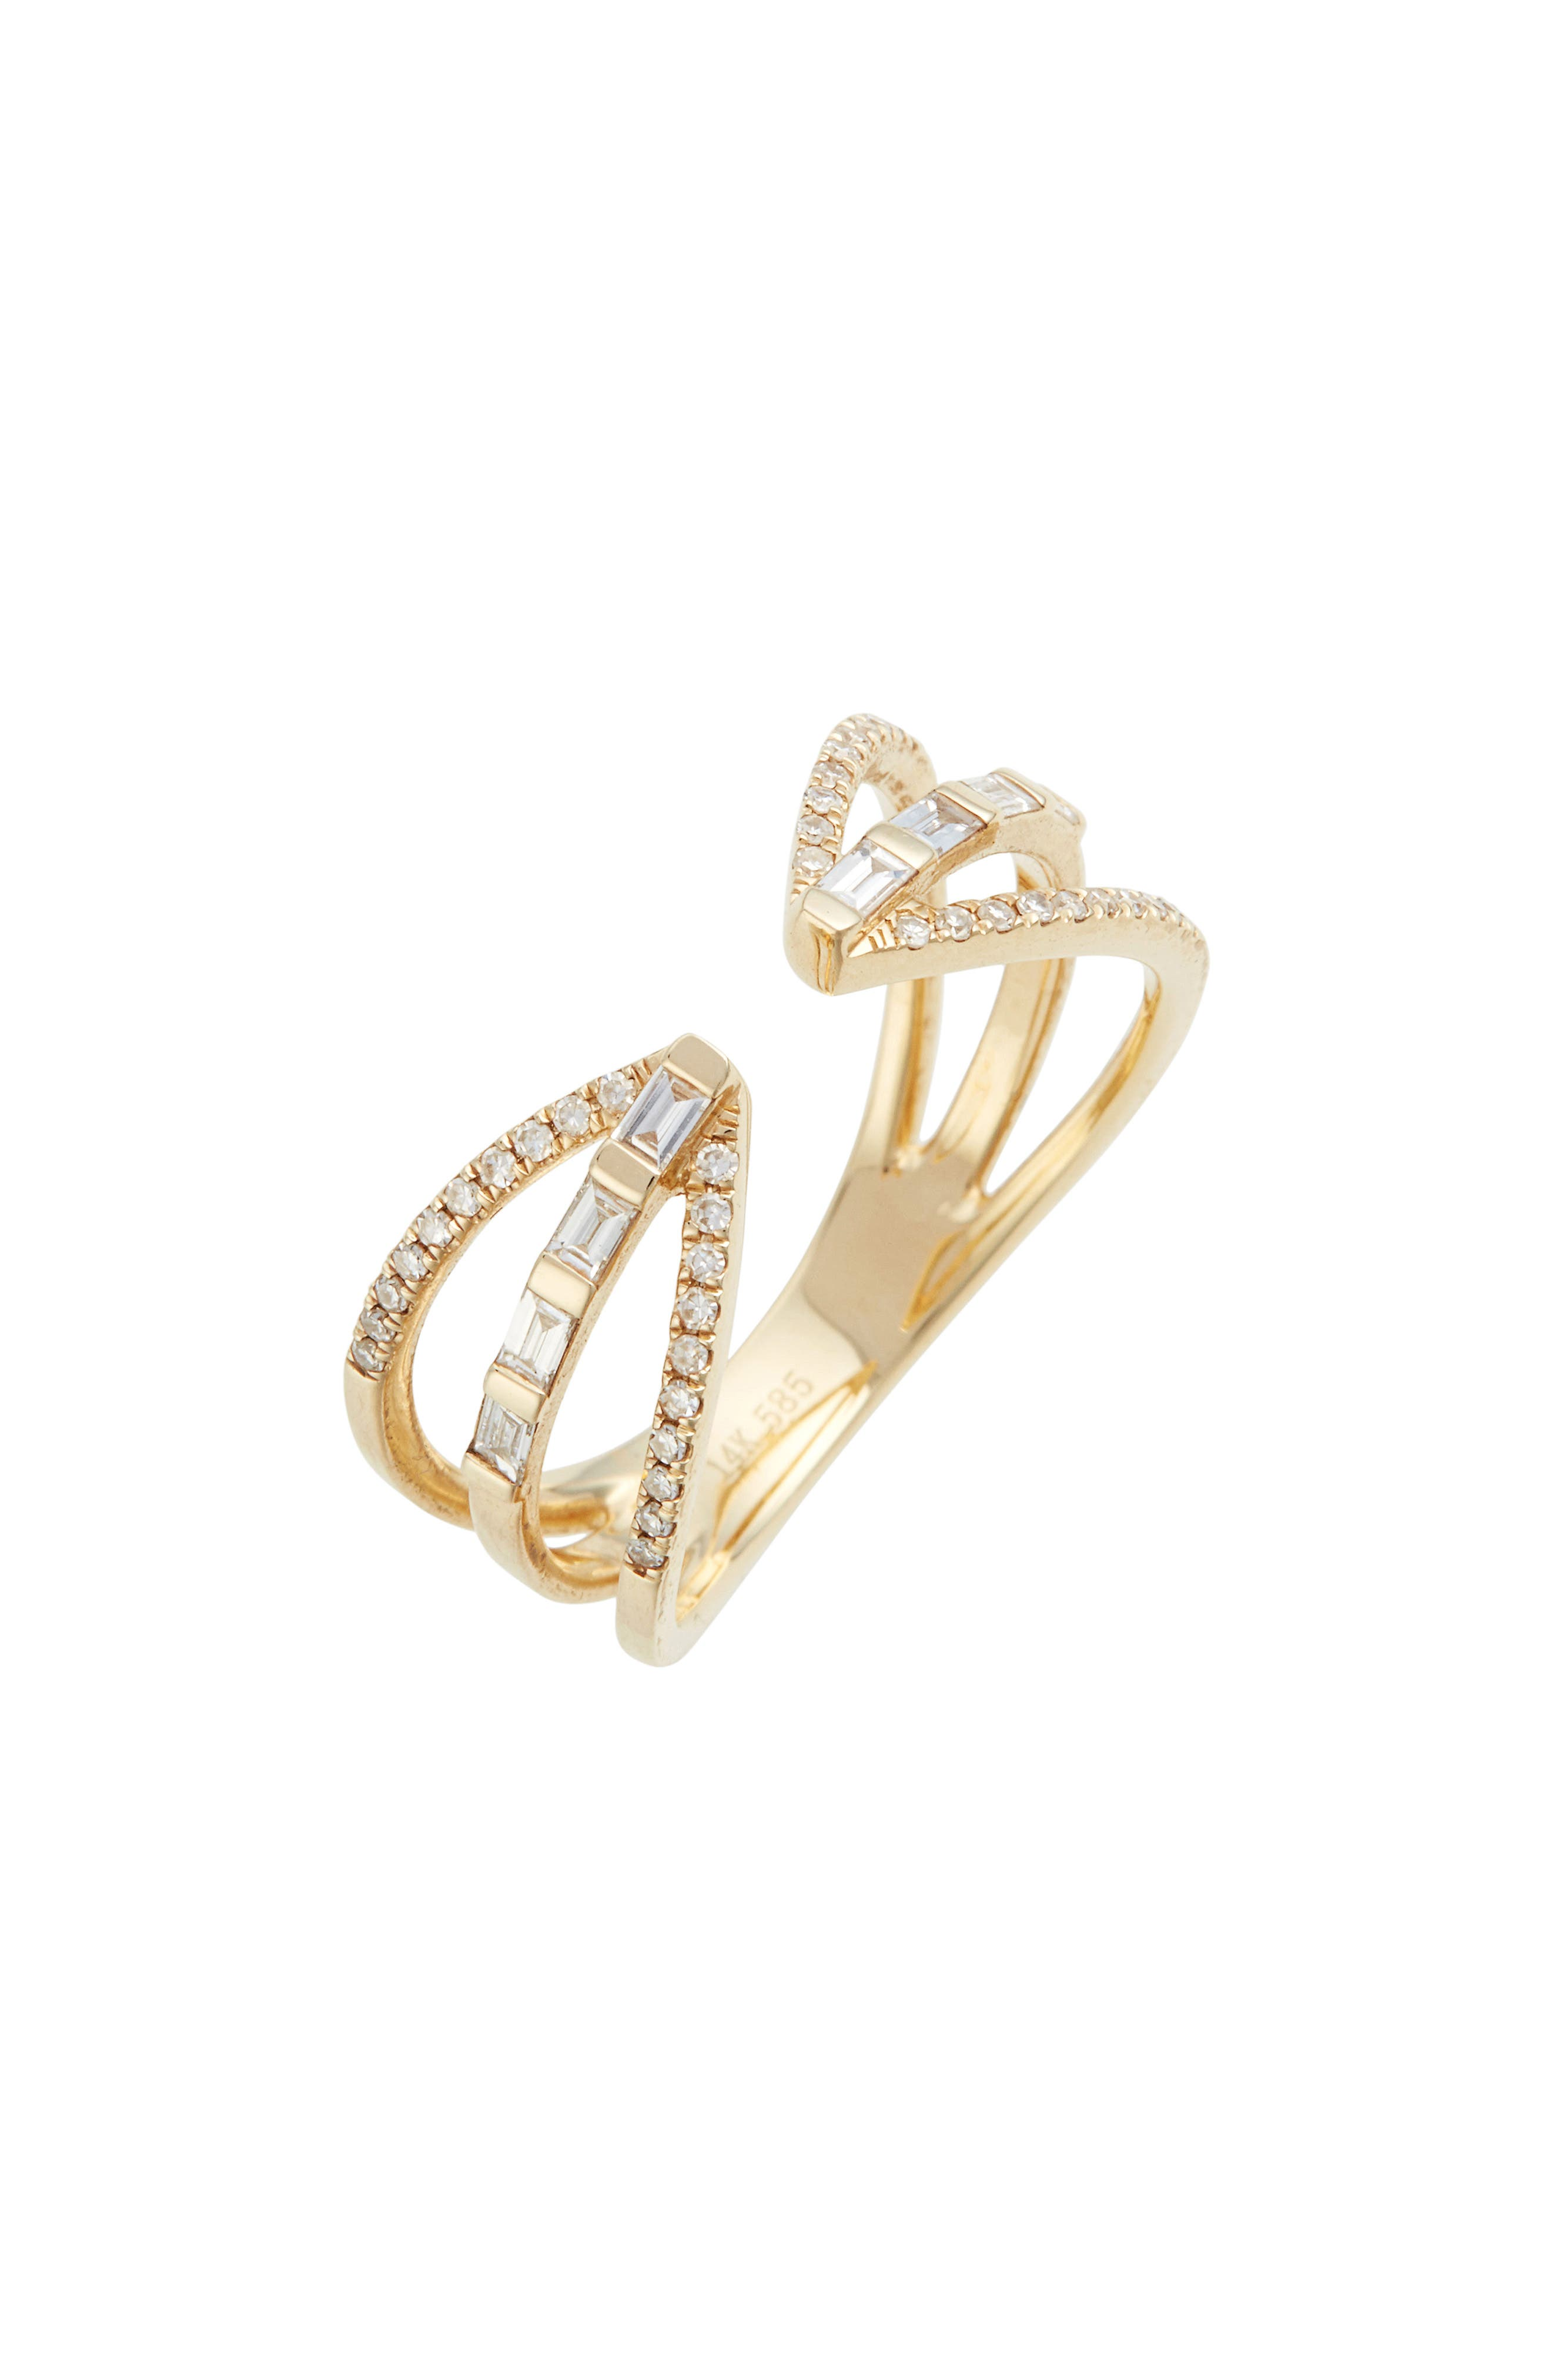 Main Image - EF COLLECTION Open Baguette Queen Diamond Ring